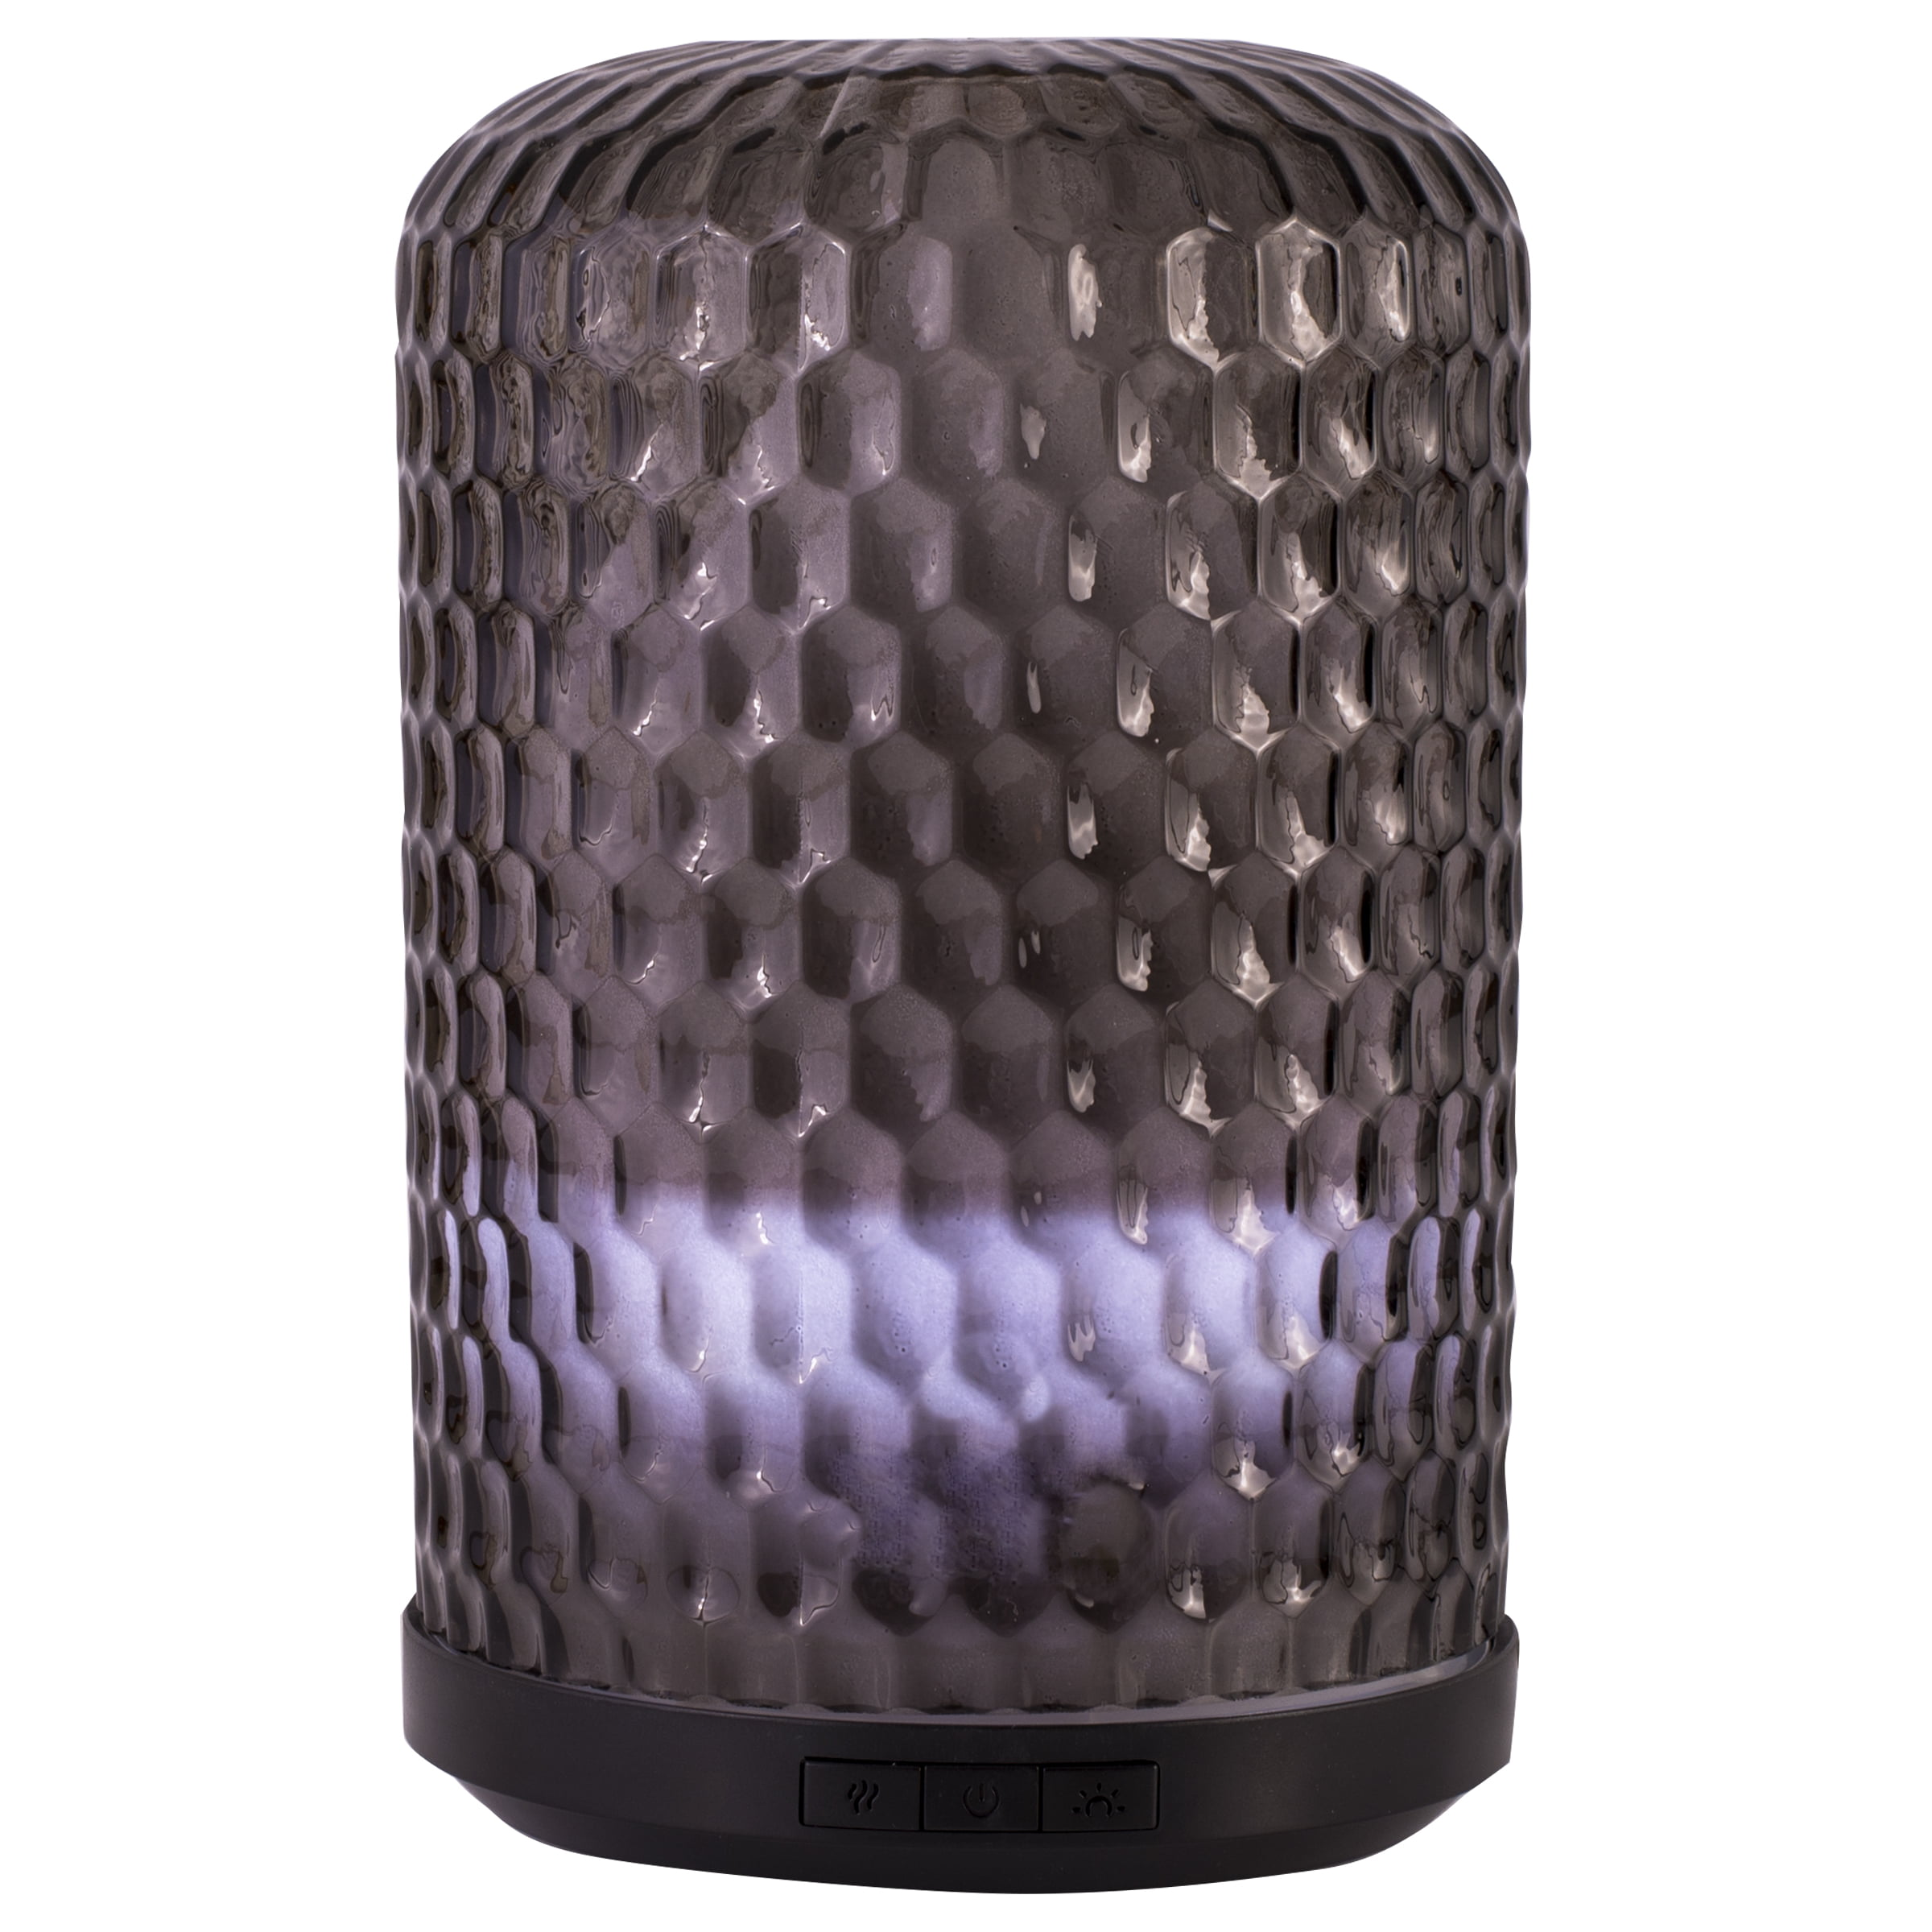 Better Homes & Gardens 250 mL Aroma Diffuser, Hammered Glass